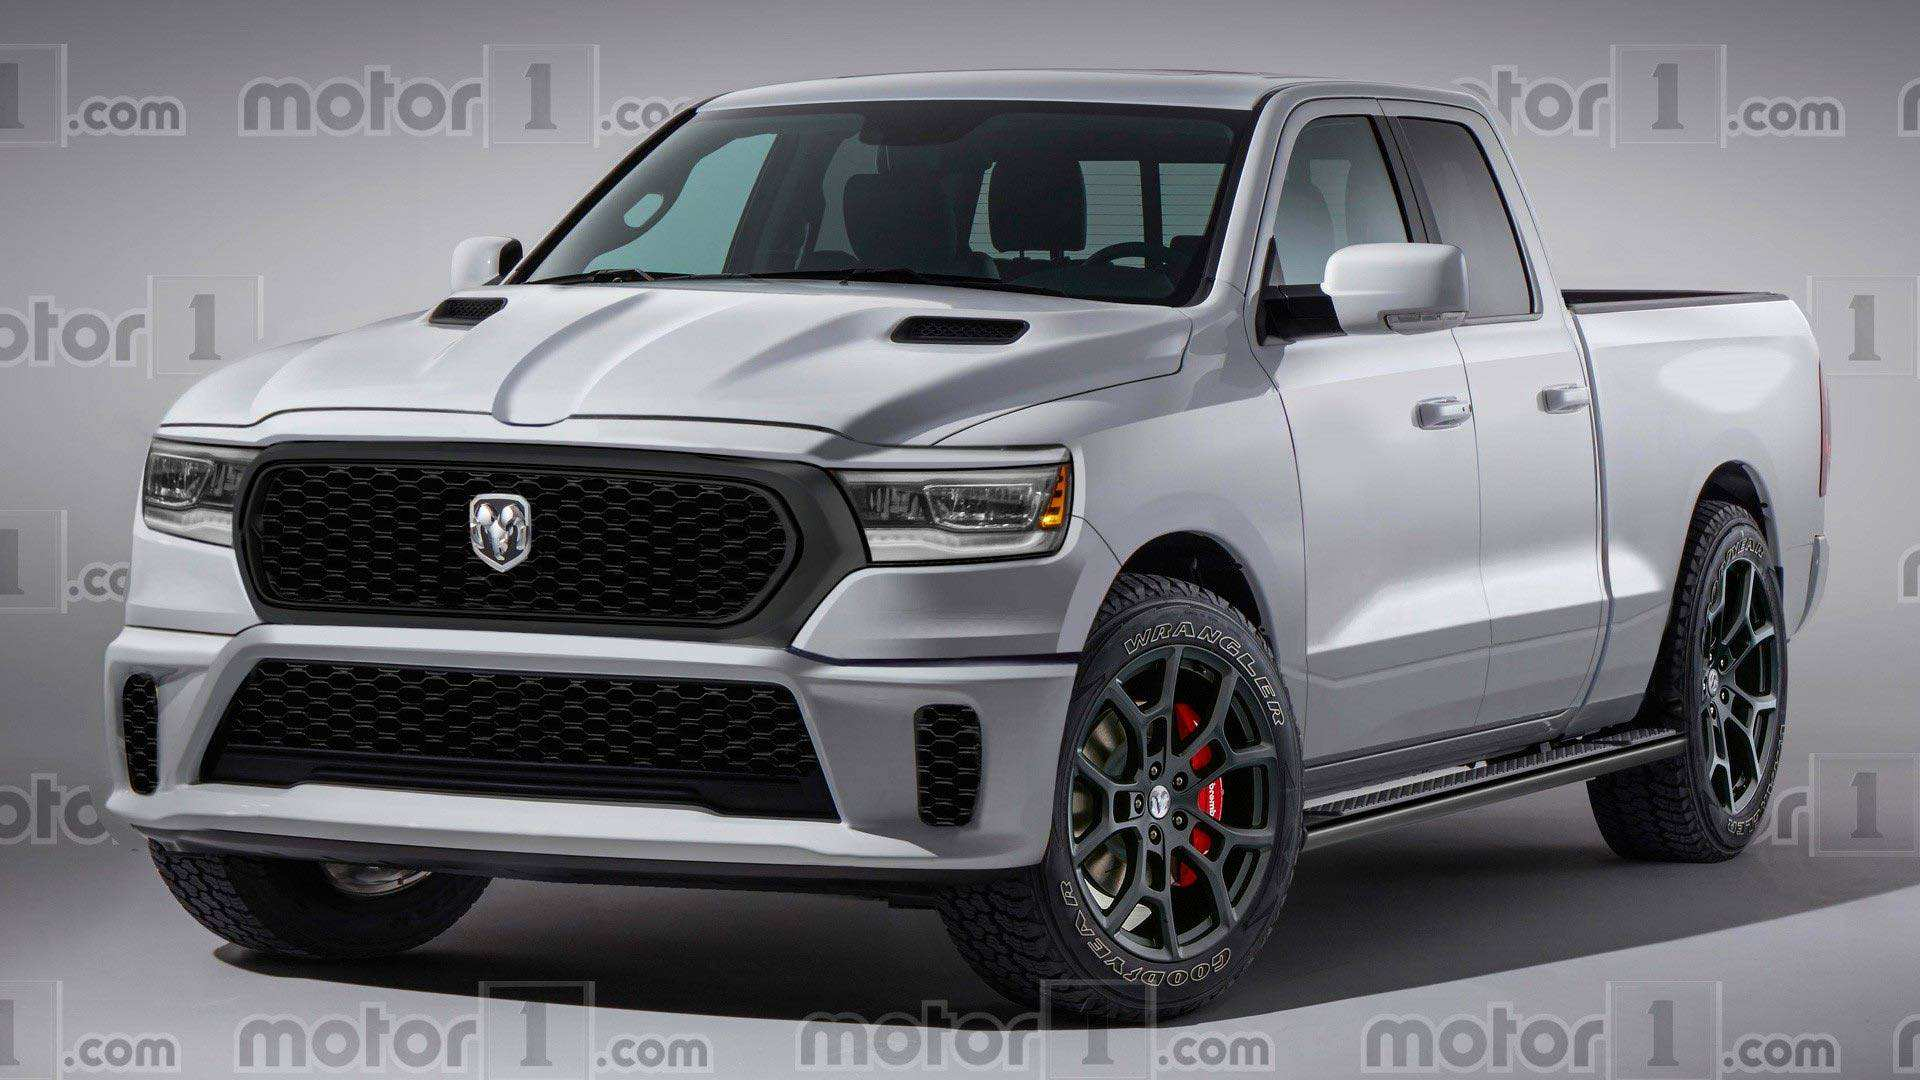 75 Best Review 2020 RAM 1500 Ratings for 2020 RAM 1500